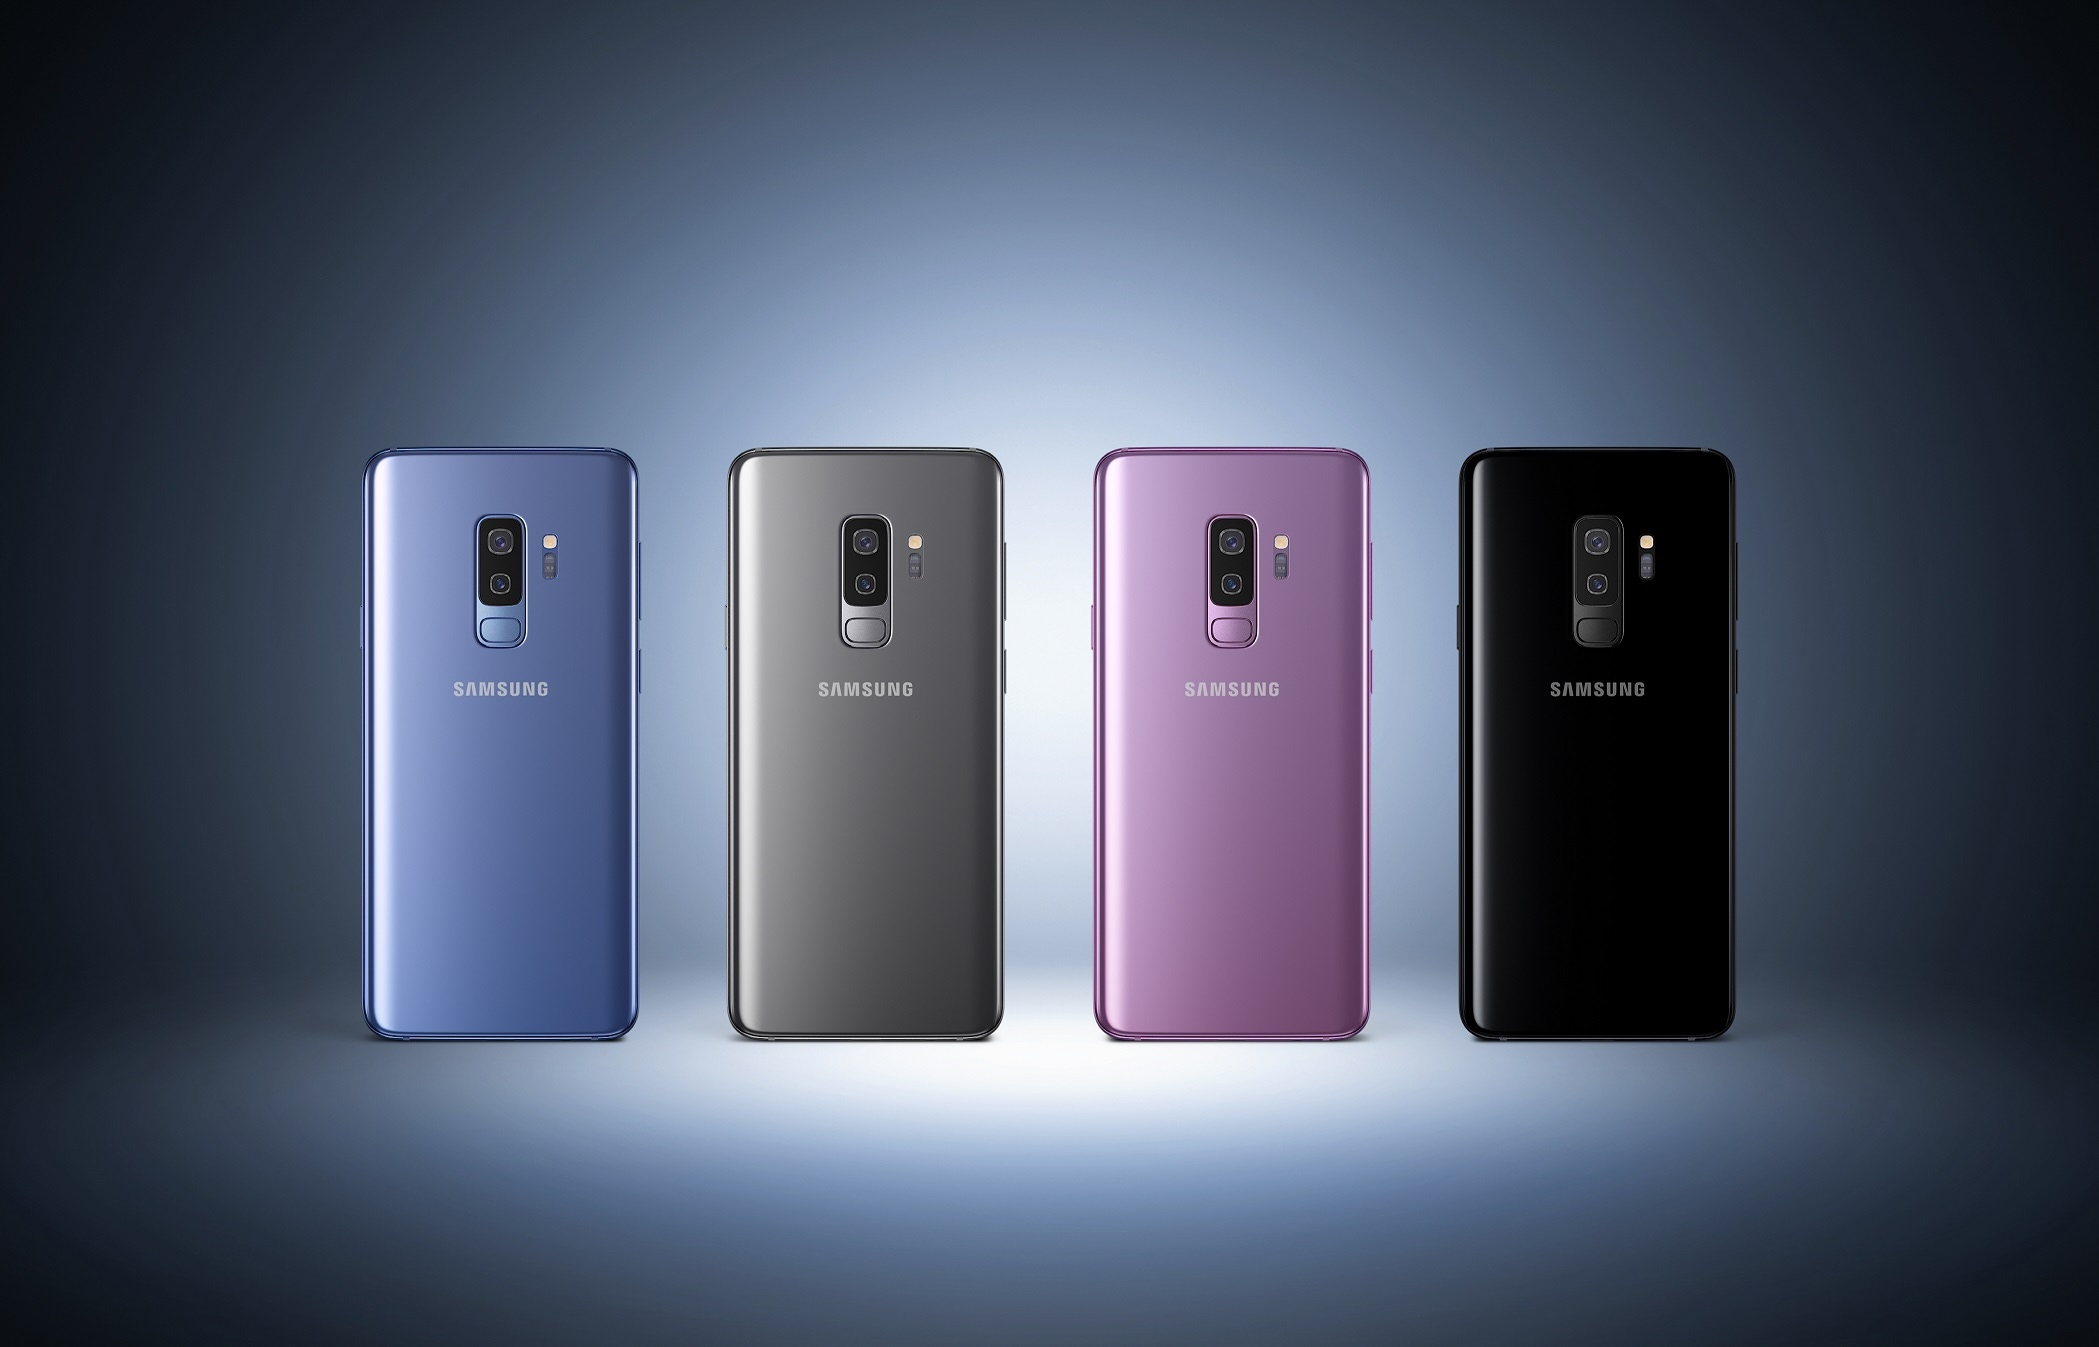 Samsung Sets Mobile Standard: Samsung Galaxy S9+ Awarded Best New Connected Device at Mobile World Congress 2018